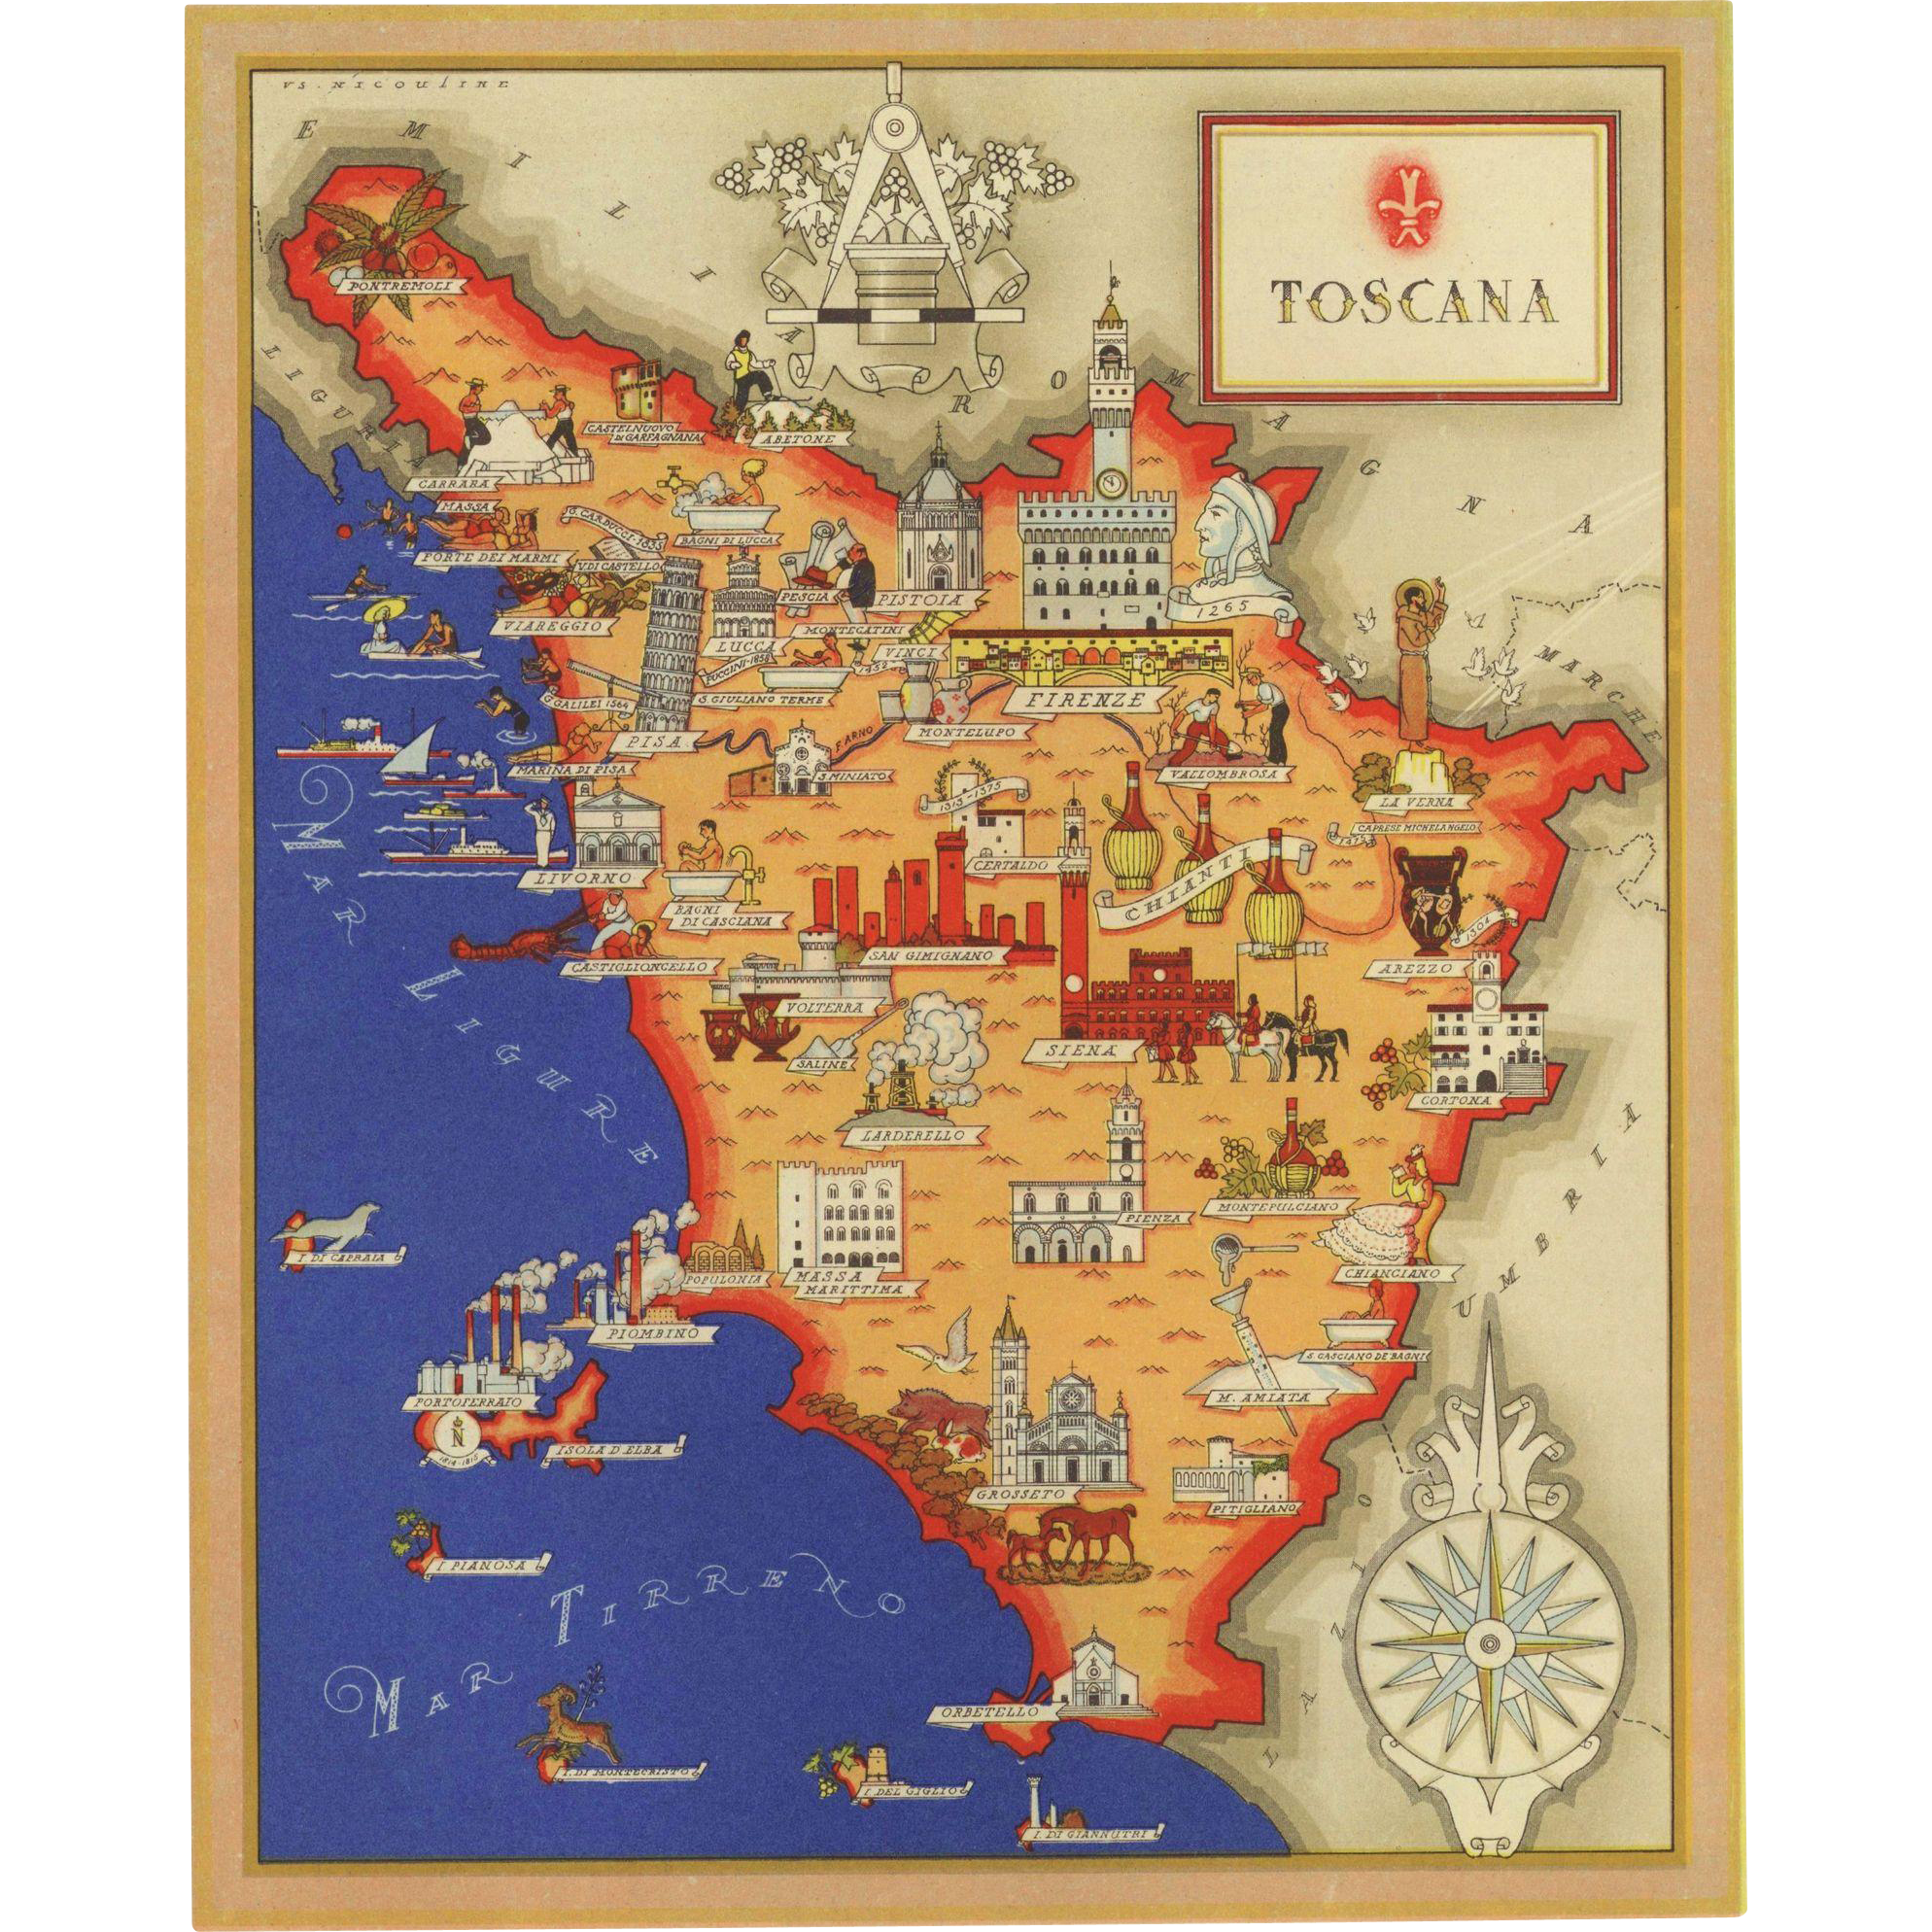 Original Vintage Pictorial Map Of Tuscany Italy From - Map tuscany